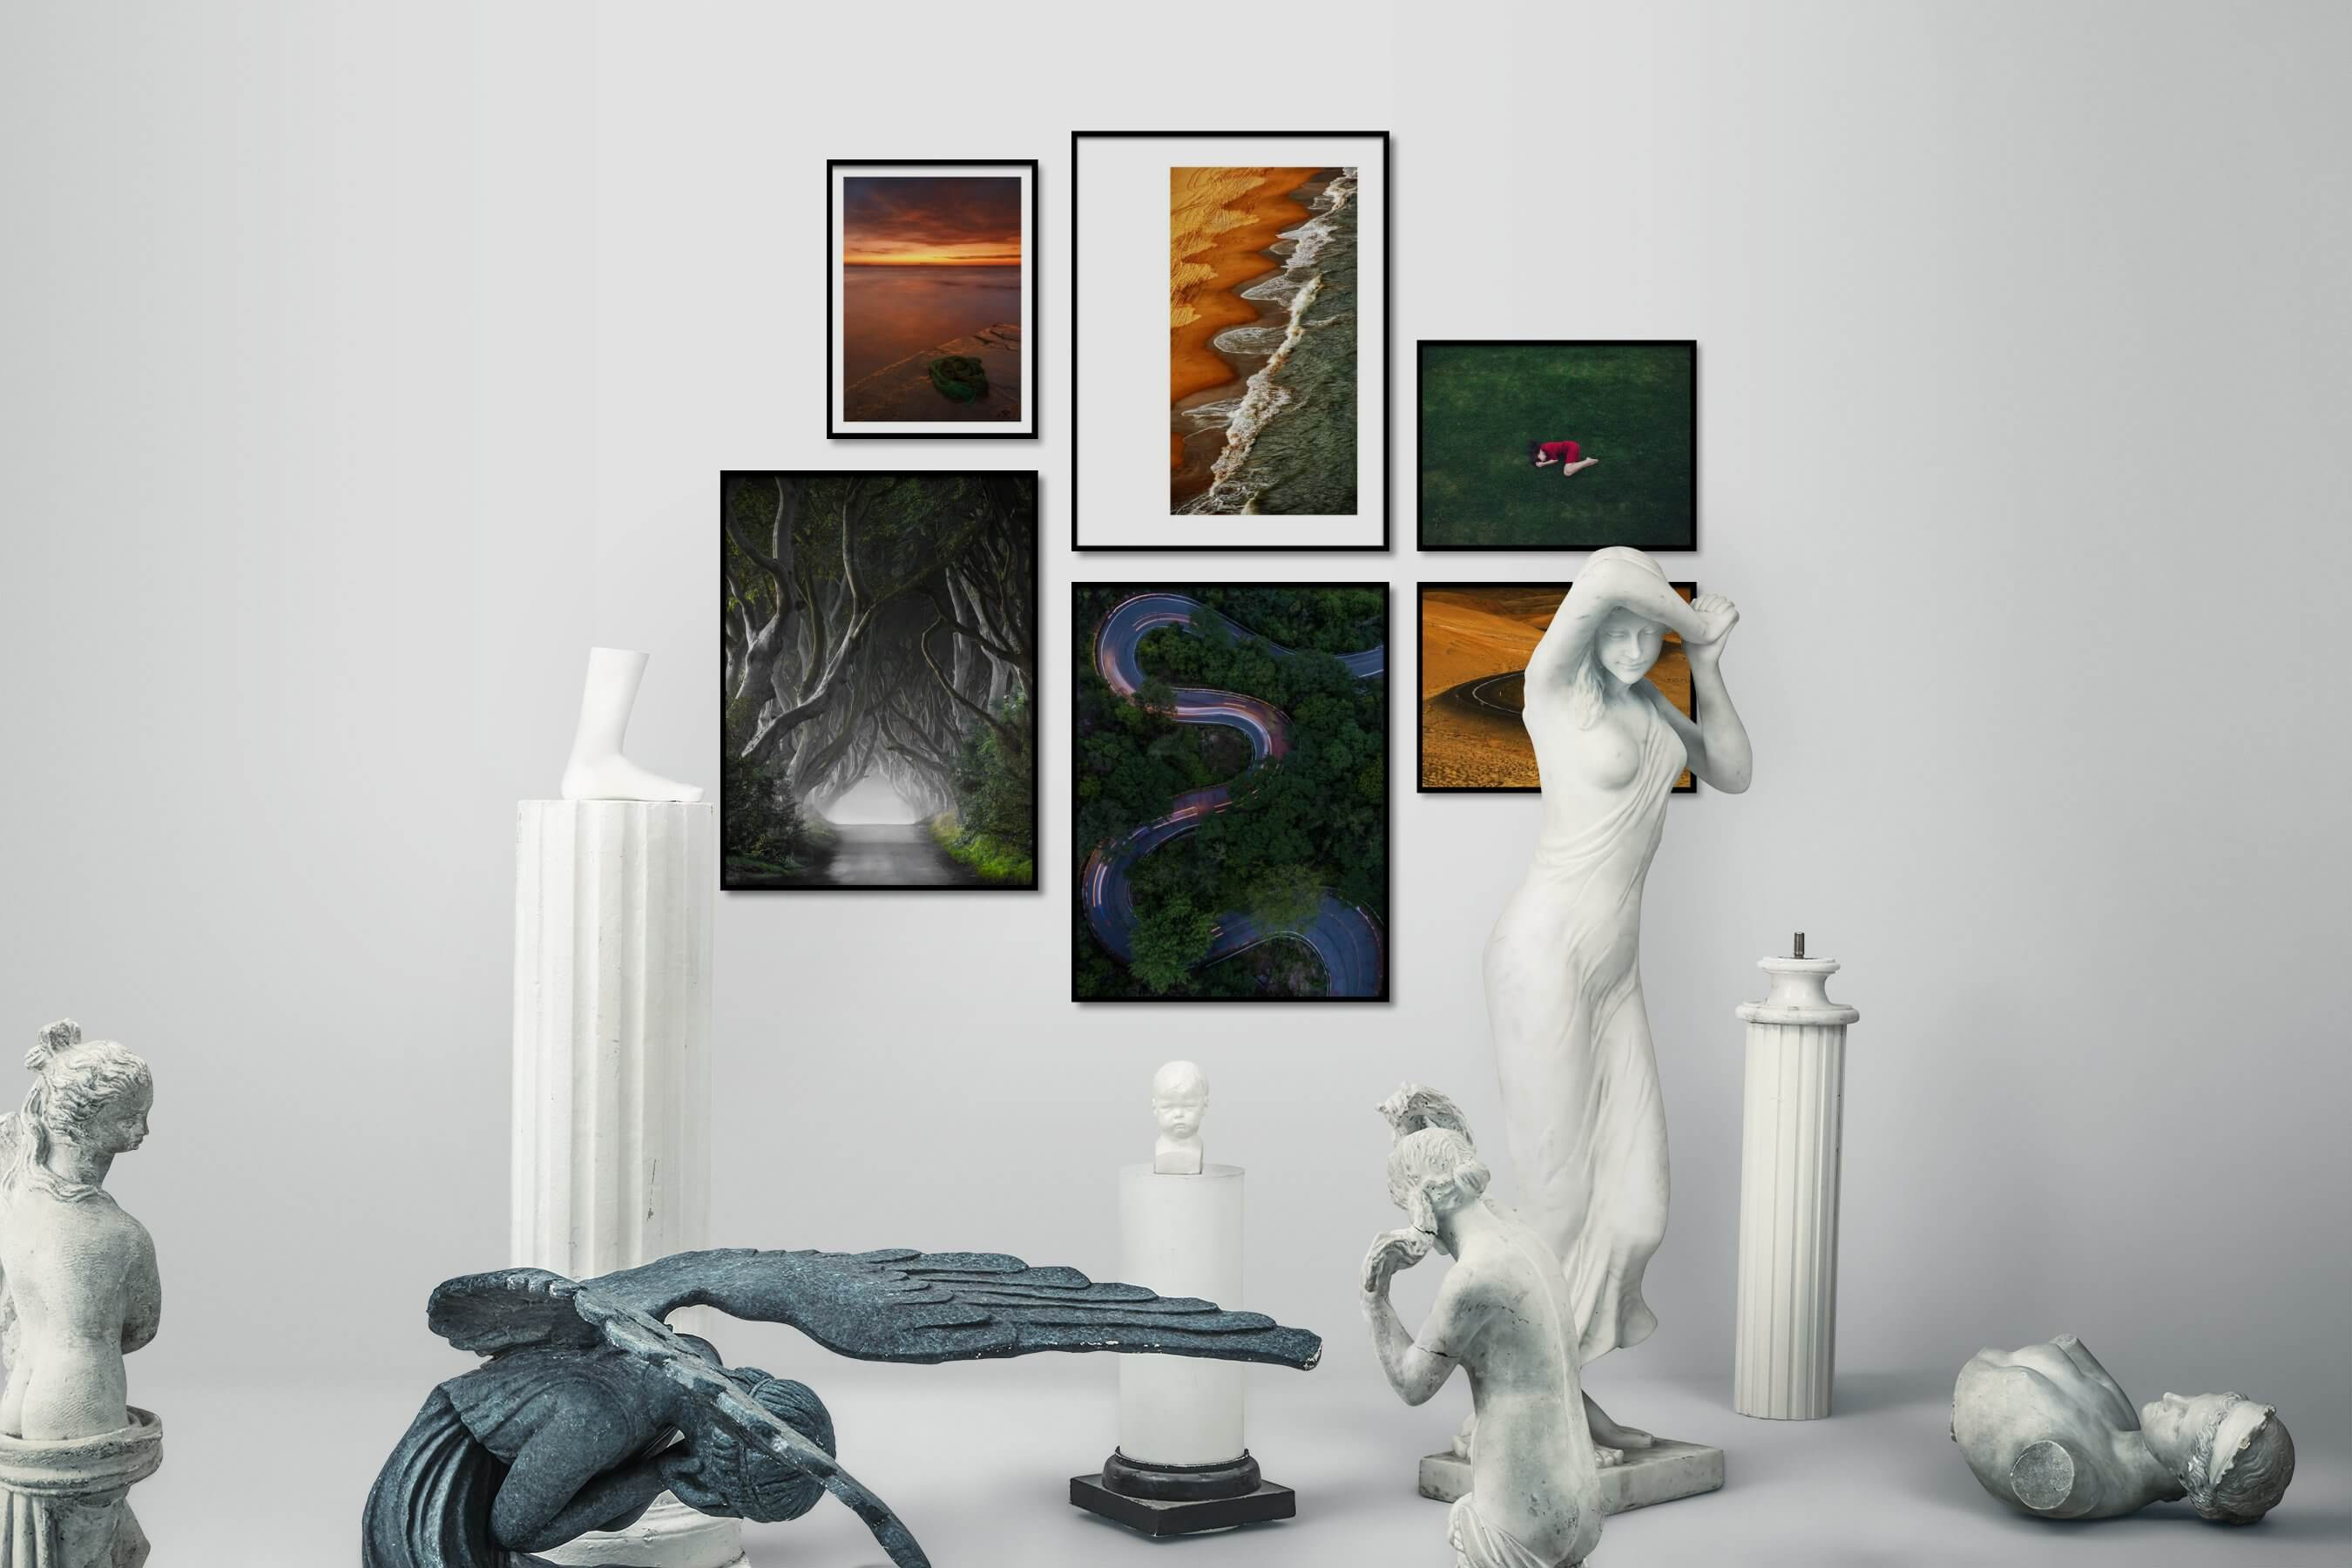 Gallery wall idea with six framed pictures arranged on a wall depicting For the Moderate, Beach & Water, Nature, Country Life, Artsy, and For the Minimalist